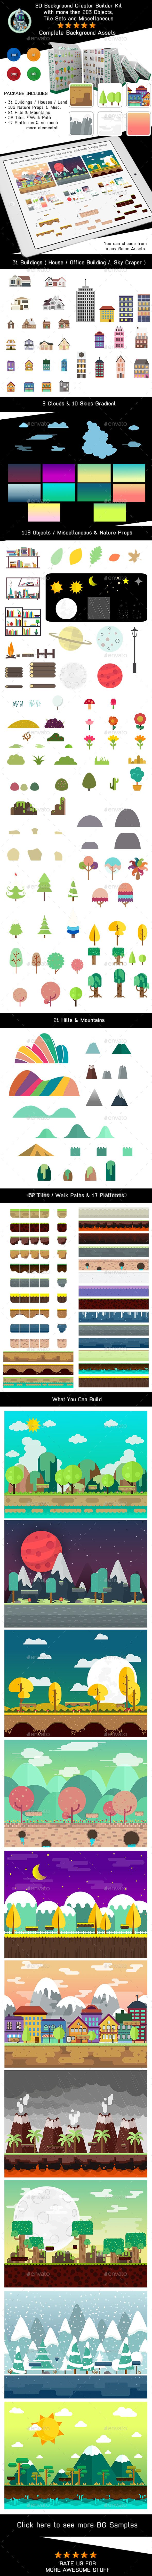 2D Background Creator Builder Kit with tile sets and more Download here: https://graphicriver.net/item/2d-background-creator-builder-kit-with-tile-sets-and-more/17458075?ref=KlitVogli